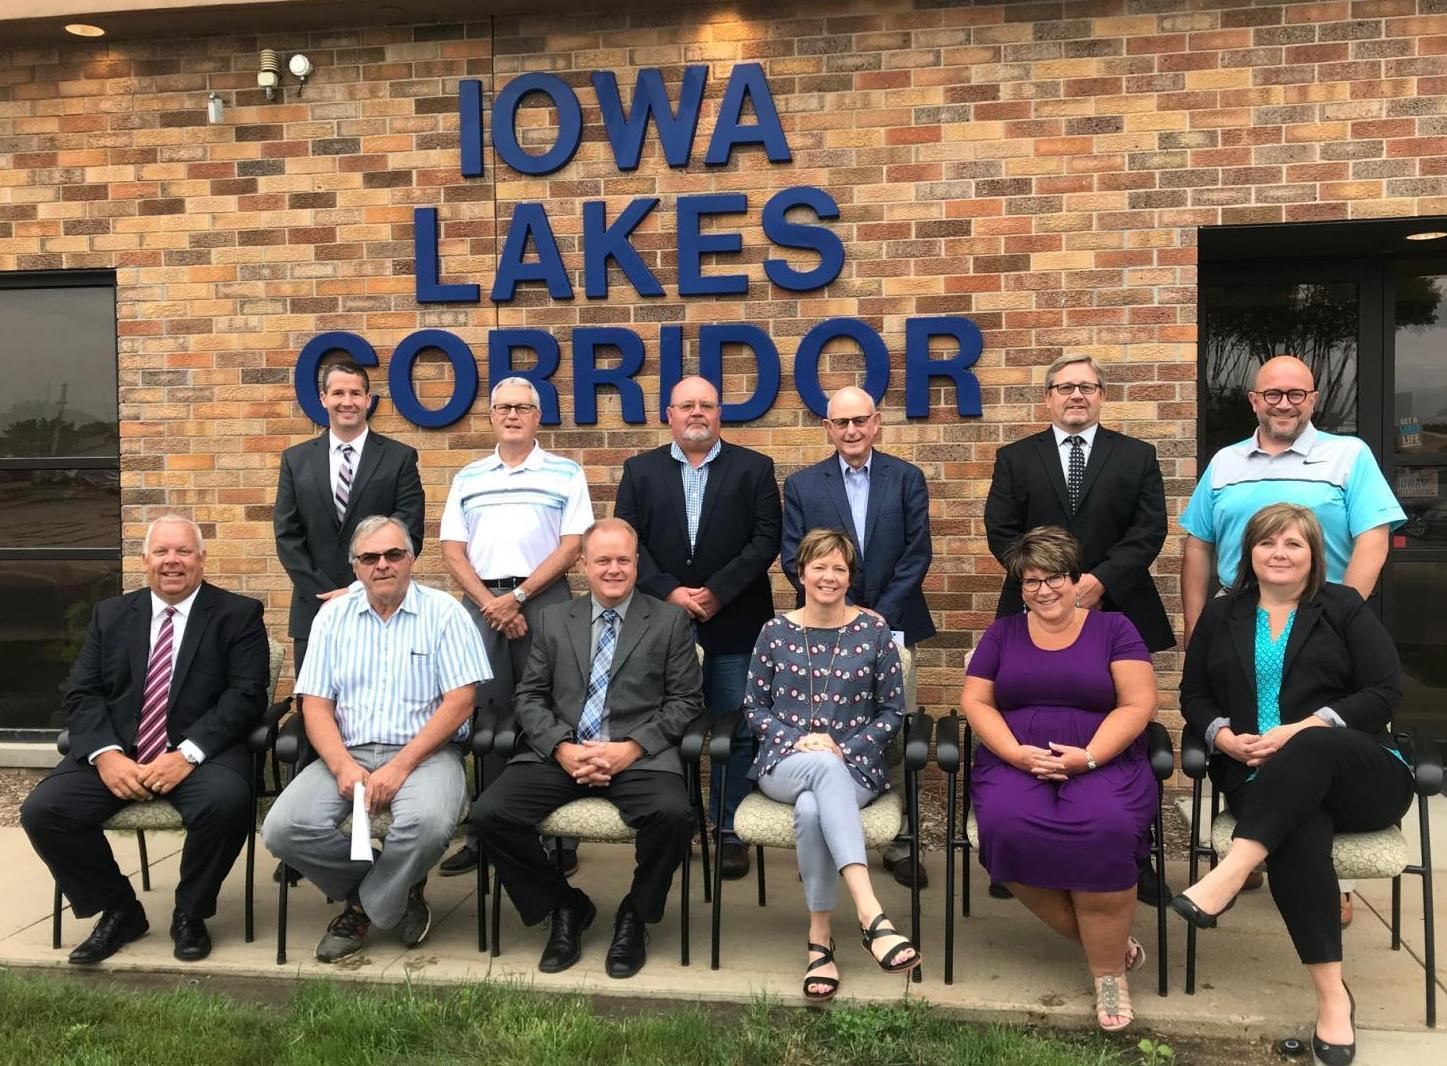 Iowa Lakes Corridor Board of Directors, Fiscal Year 2020 - Pictured: Front (left to right): Kent Stensland, Tim Fairchild, Mike Wodtke, Susan Zulk, Deb Satern, Penny Clayton; Back: Brad Beck, Mike Porsch, John Tatman, Burlin Matthews, Jon Wilcke, Dr. Joshua Merchant